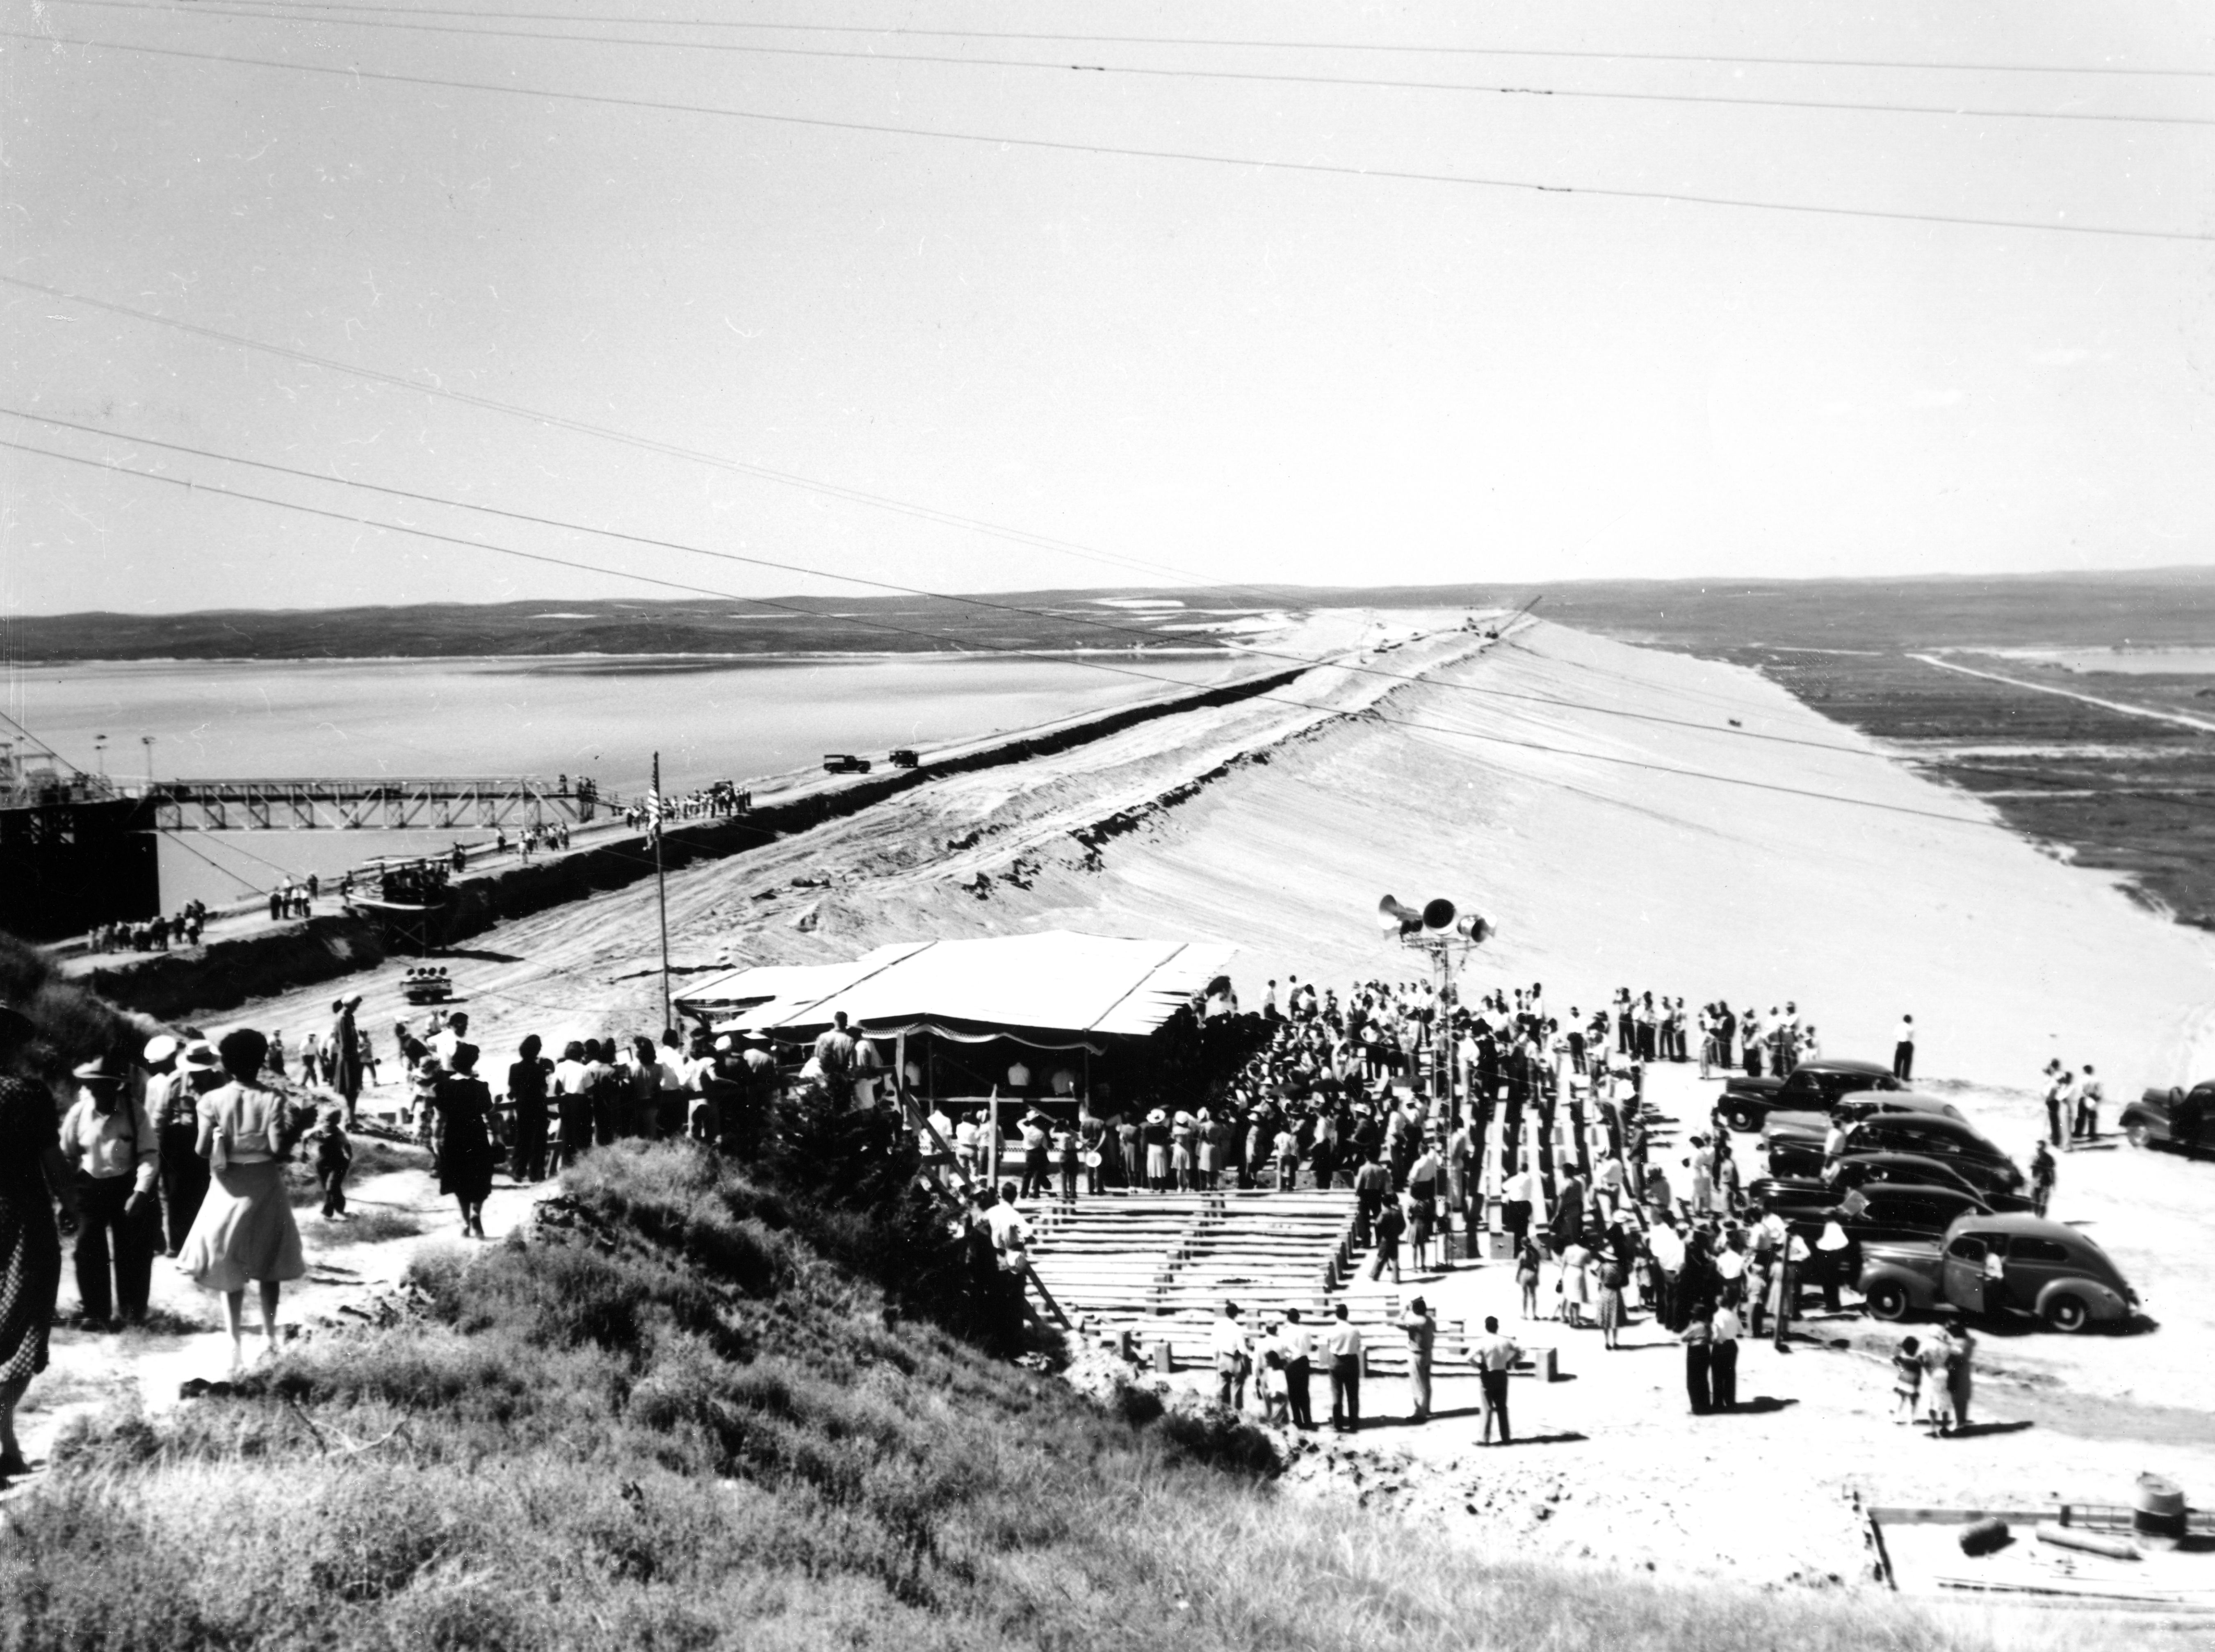 Kingsley Dam Dedication – July 22, 1941